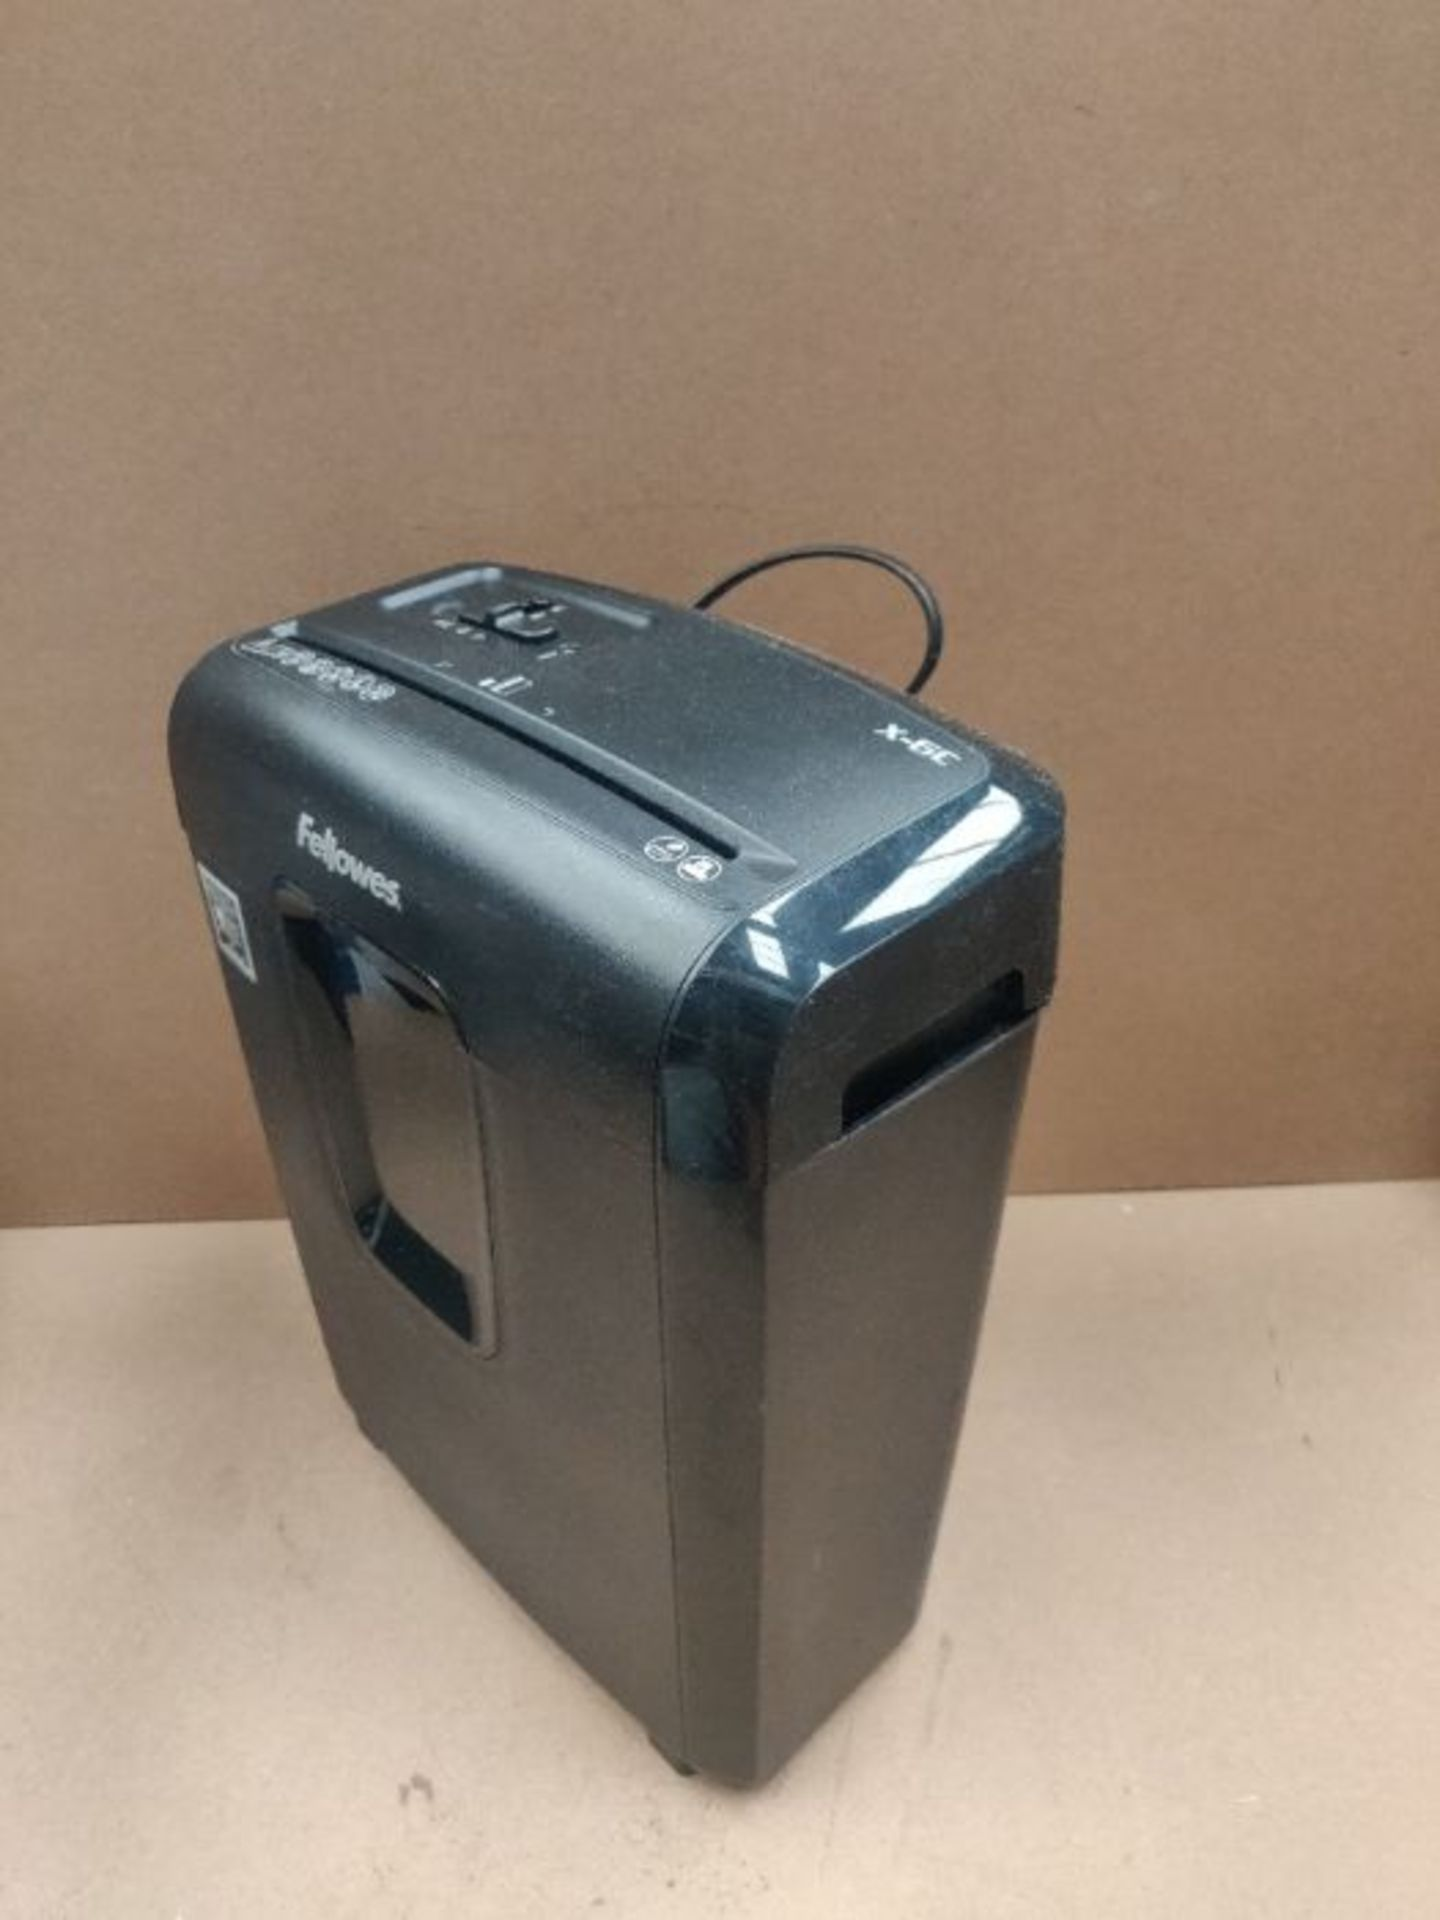 Fellowes Powershred X-6C Personal 6 Sheet Cross Cut Paper Shredder for Home Use - Excl - Image 2 of 2